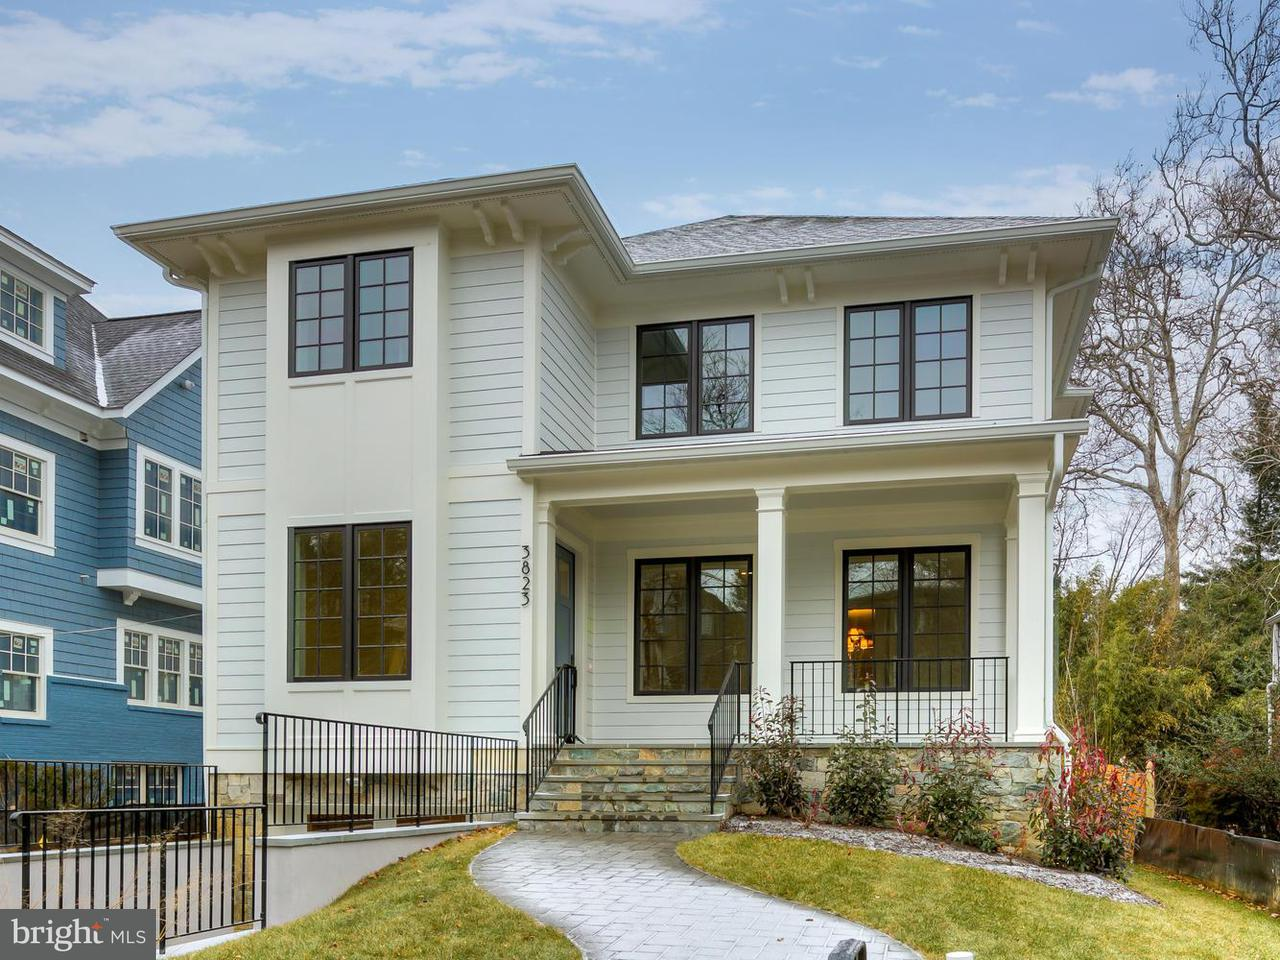 Single Family for Sale at 3823 Albemarle St NW Washington, District Of Columbia 20016 United States